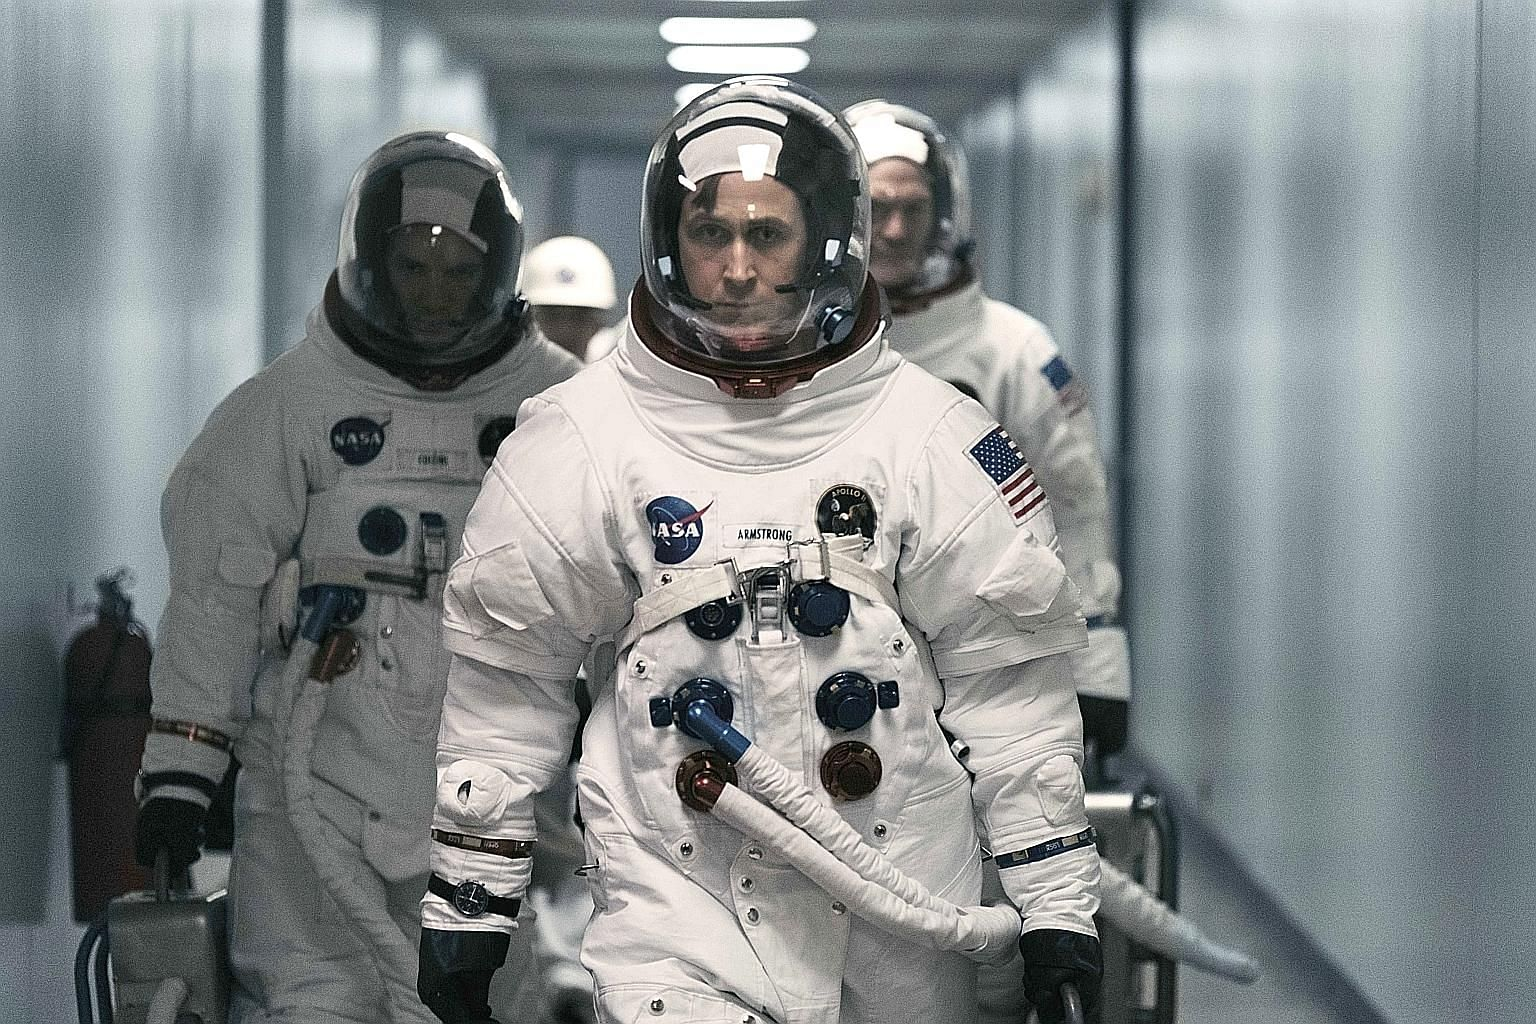 Ryan Gosling plays Neil Armstrong, a bottled-up man whose traits make him a great test pilot and mission leader, but terrible as a husband and father.